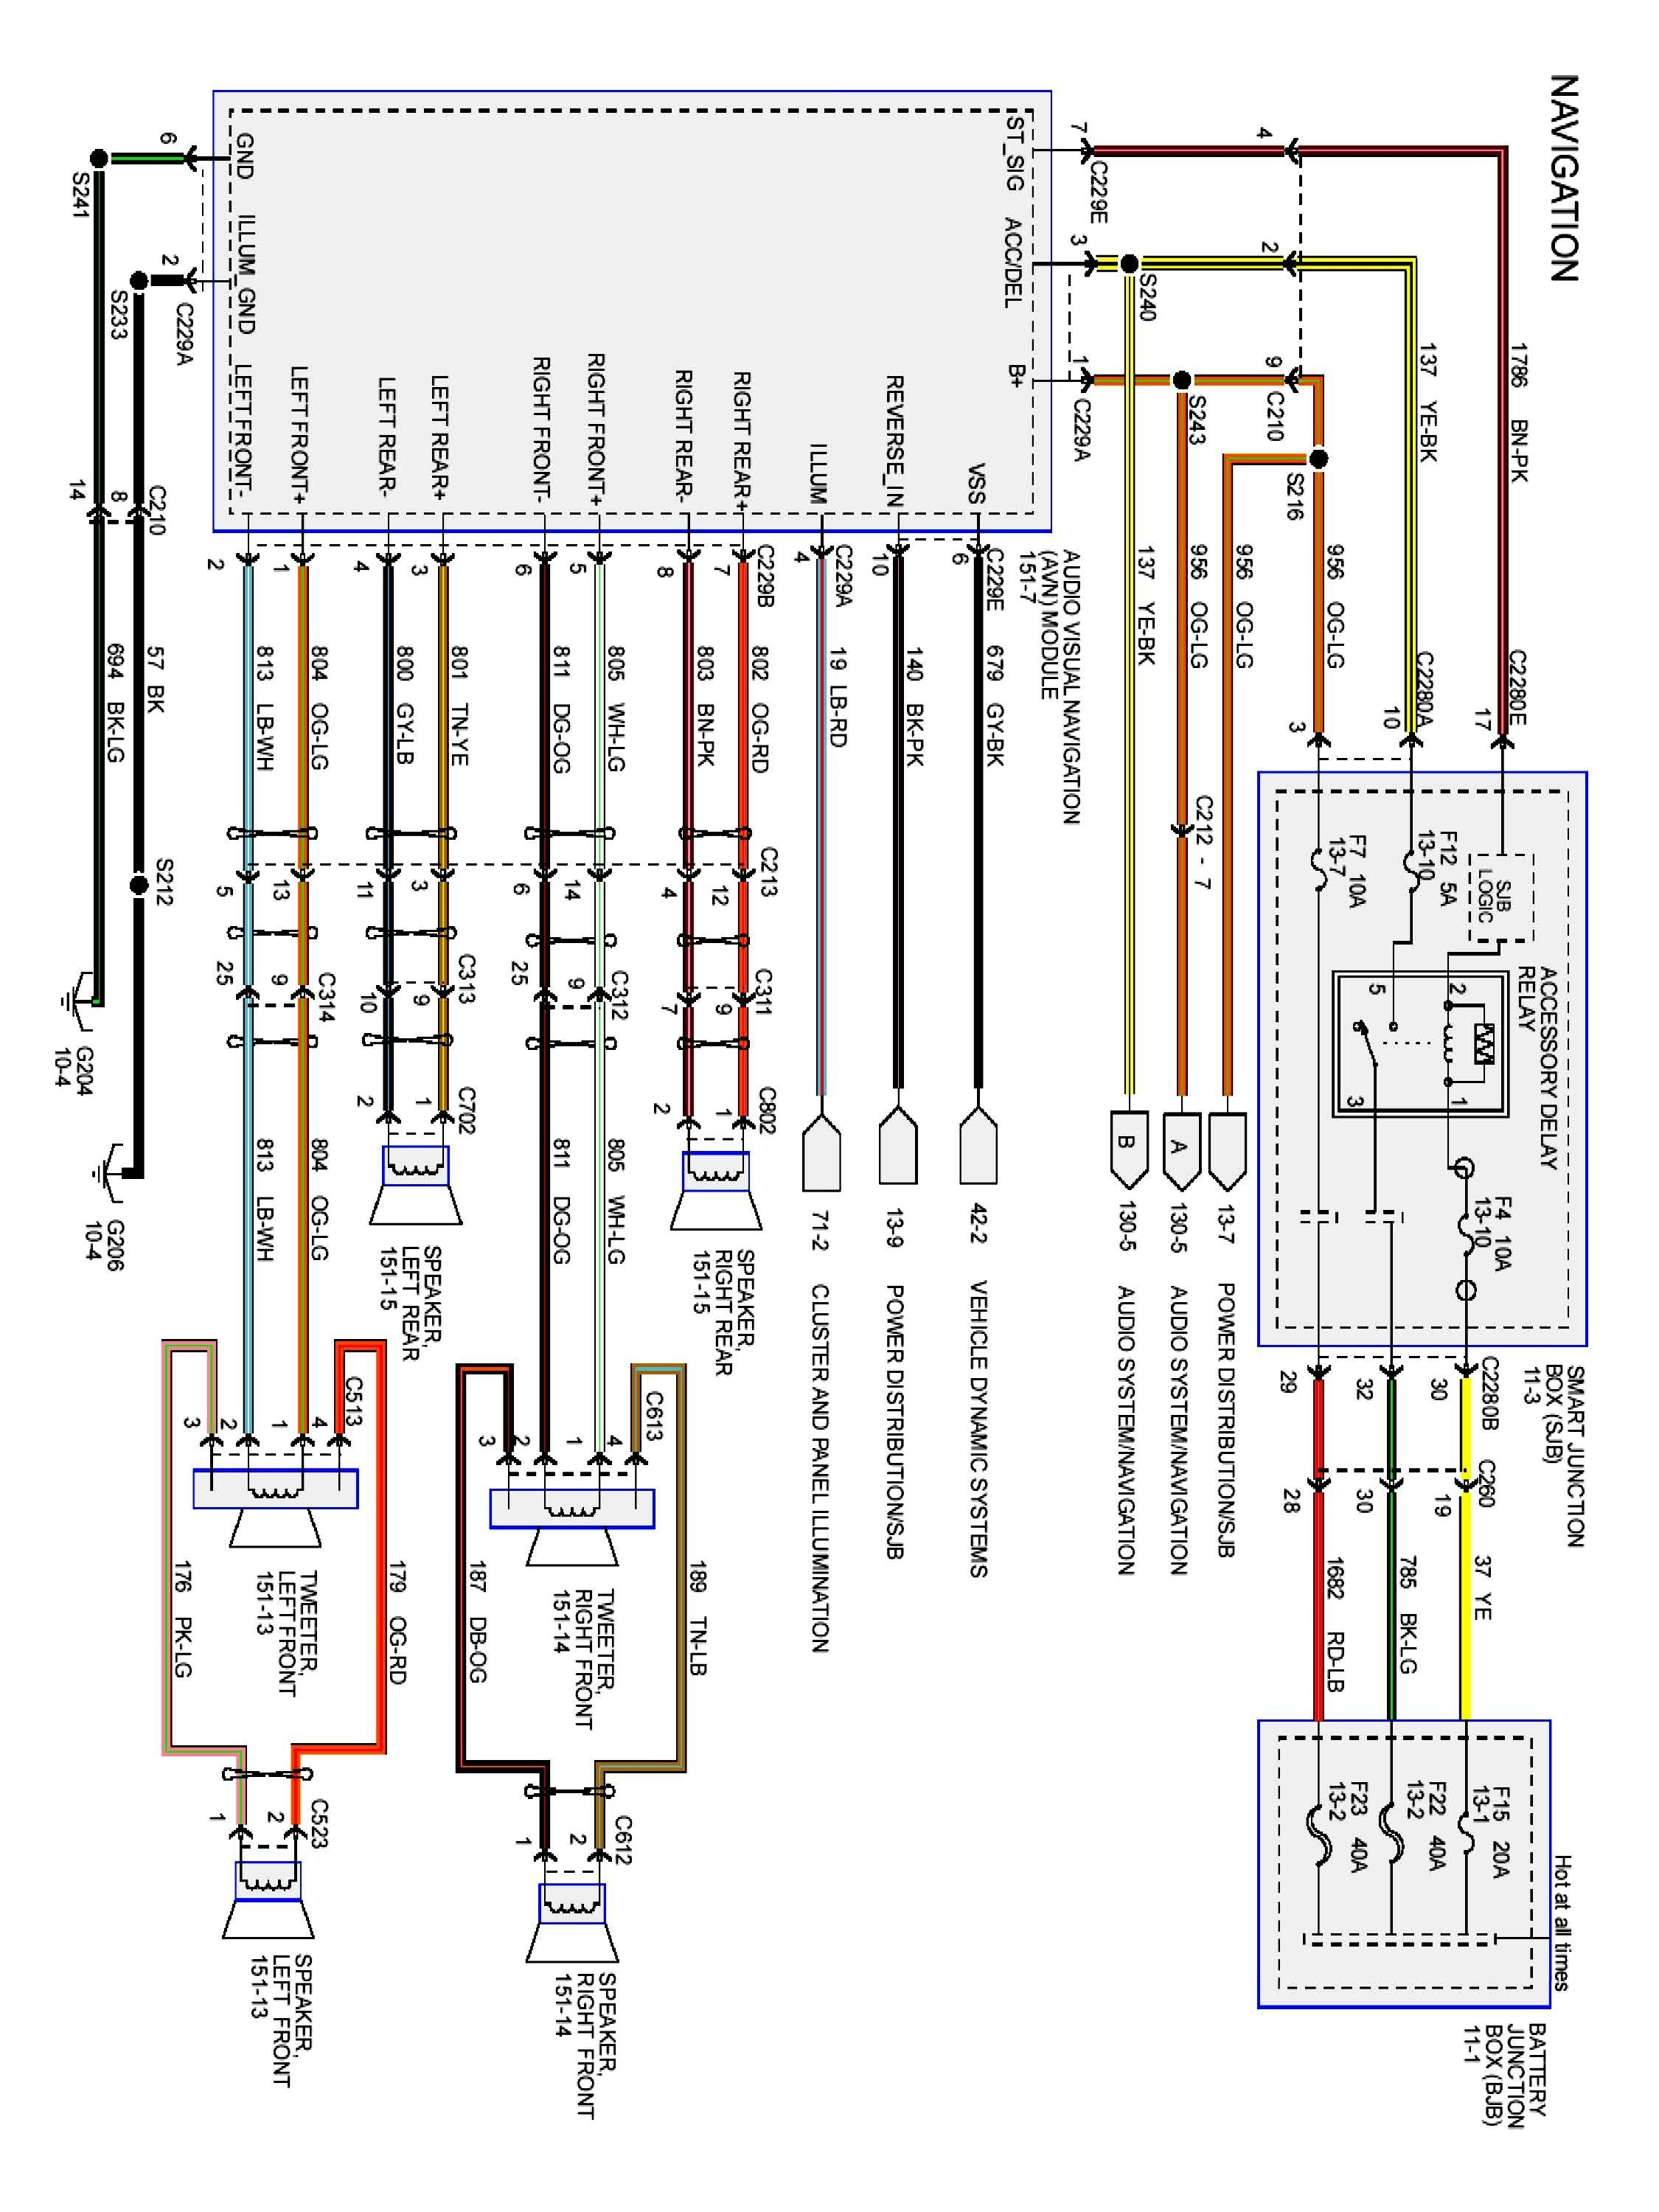 Ford Radio Wiring Diagram 2006 ford Taurus Radio Wiring Diagram Stylesync Me and Escape Inside Of Ford Radio Wiring Diagram